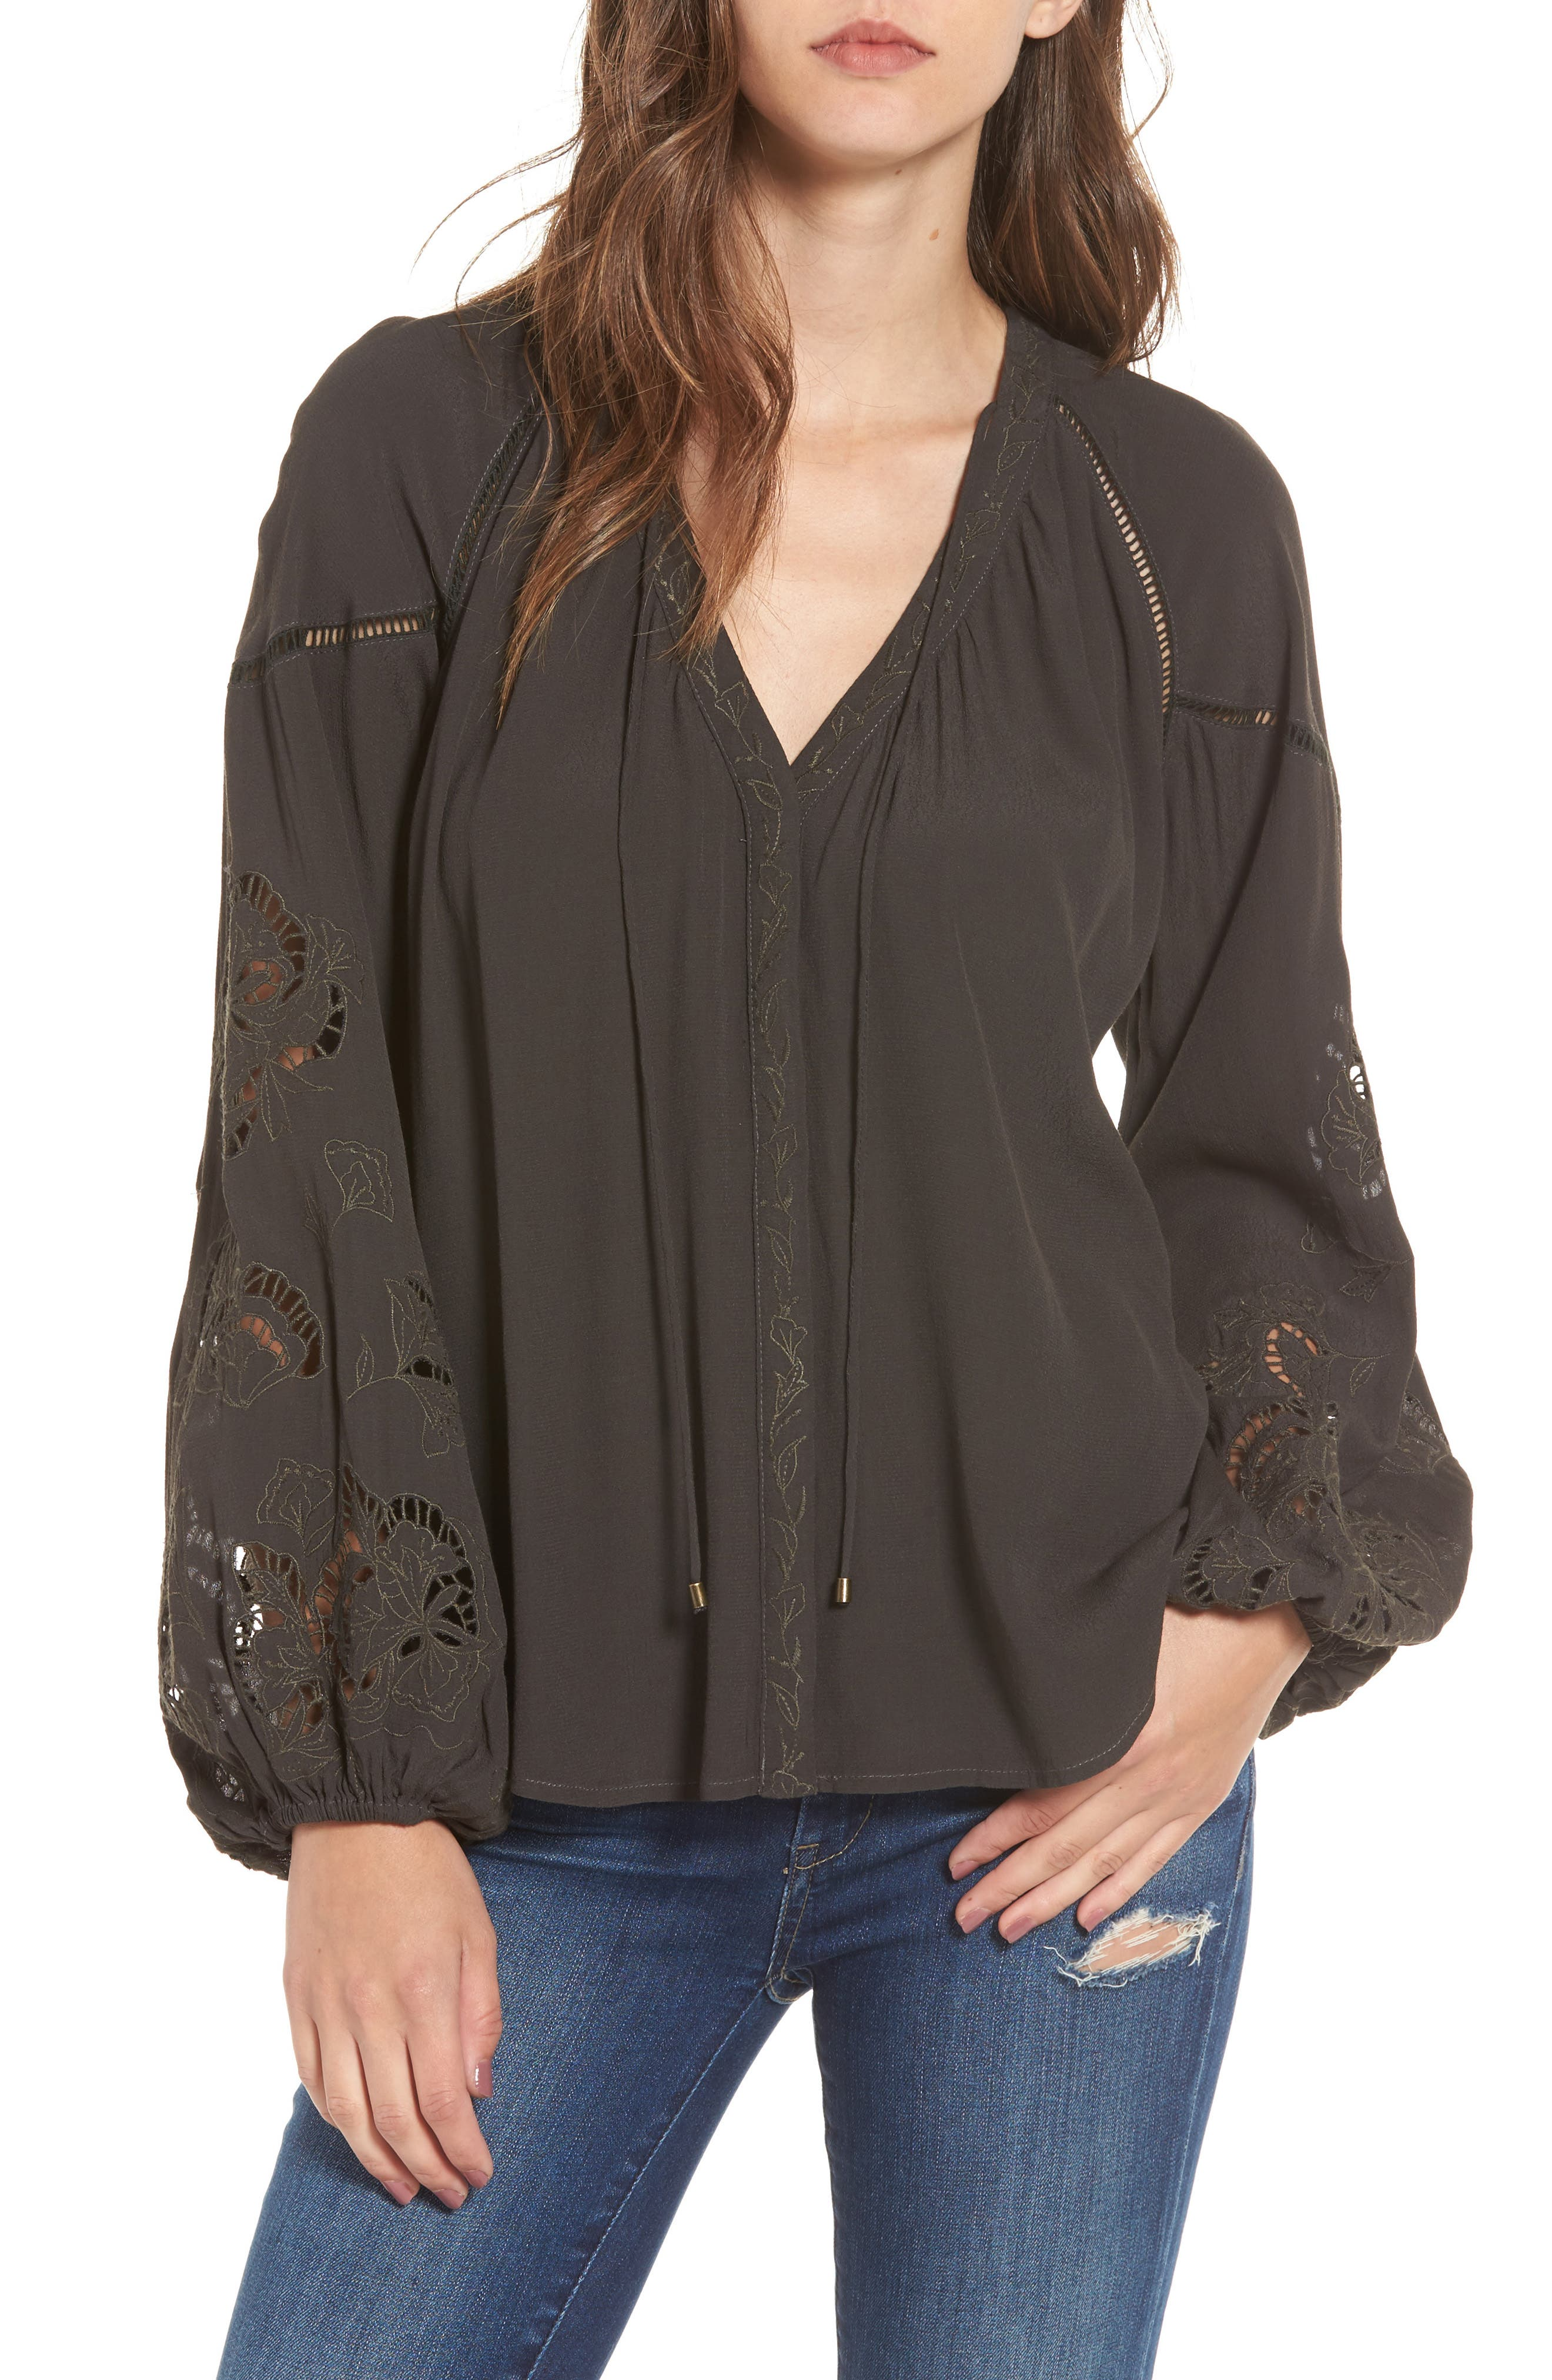 Jennie Blouse,                             Main thumbnail 1, color,                             021